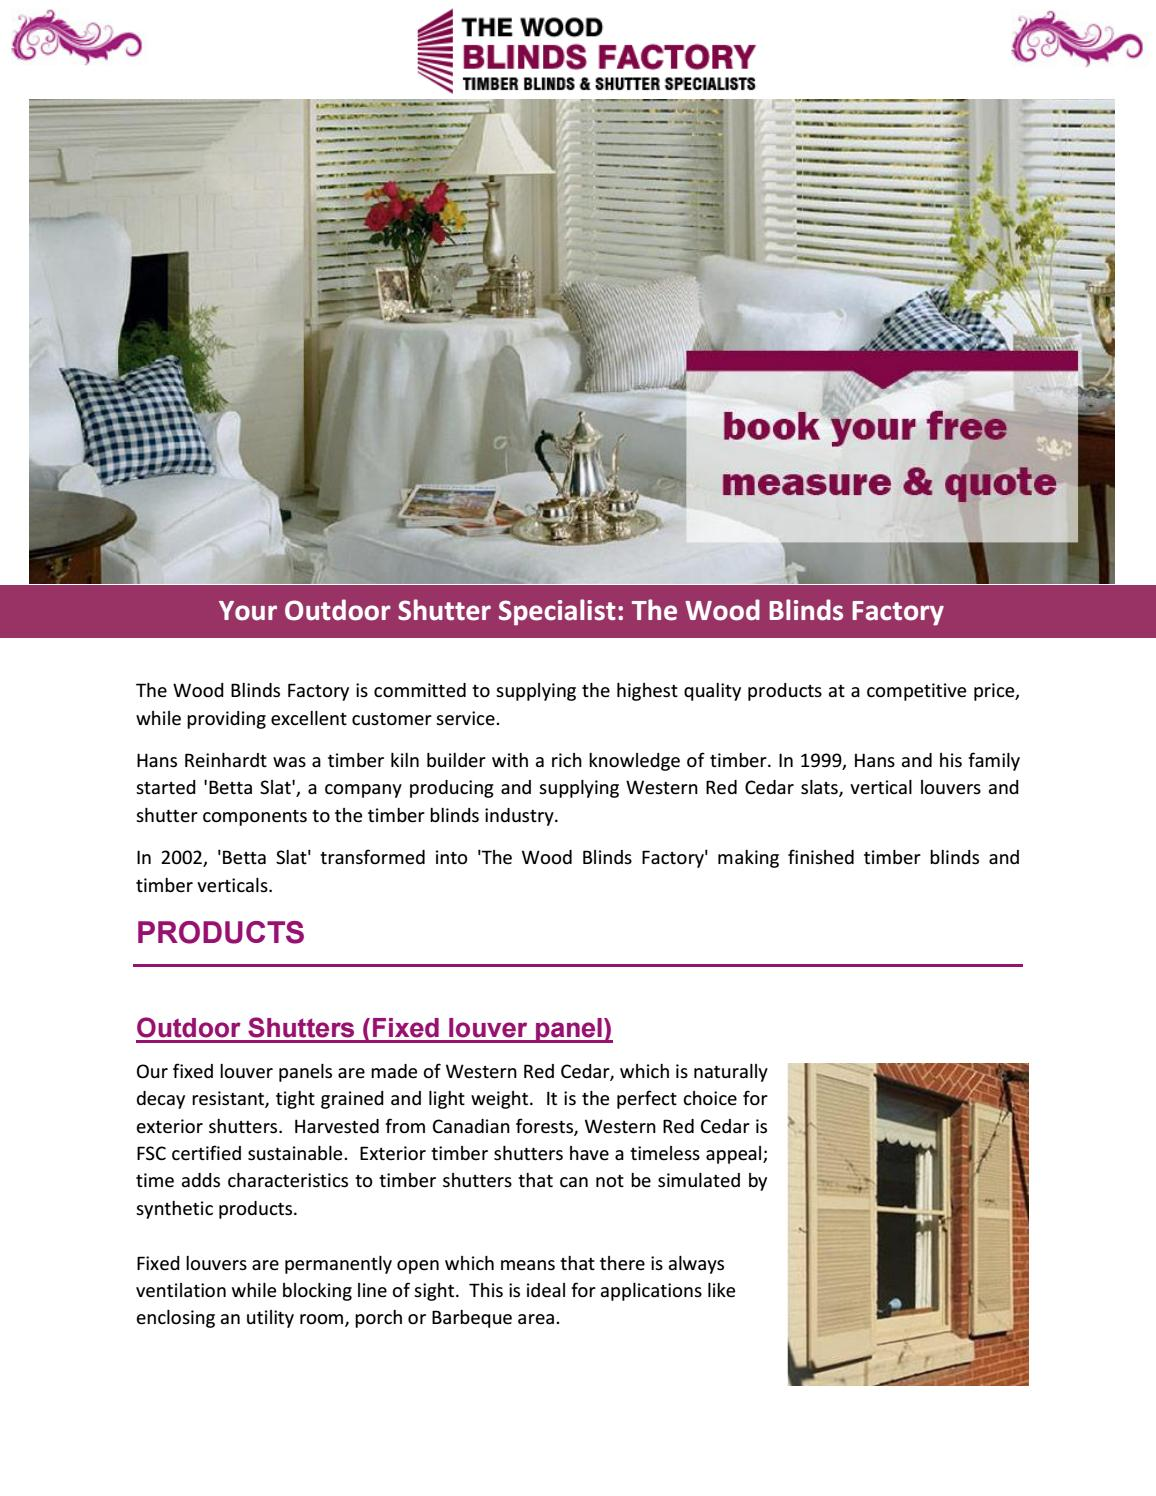 Your Outdoor Shutter Specialist The Wood Blinds Factory By